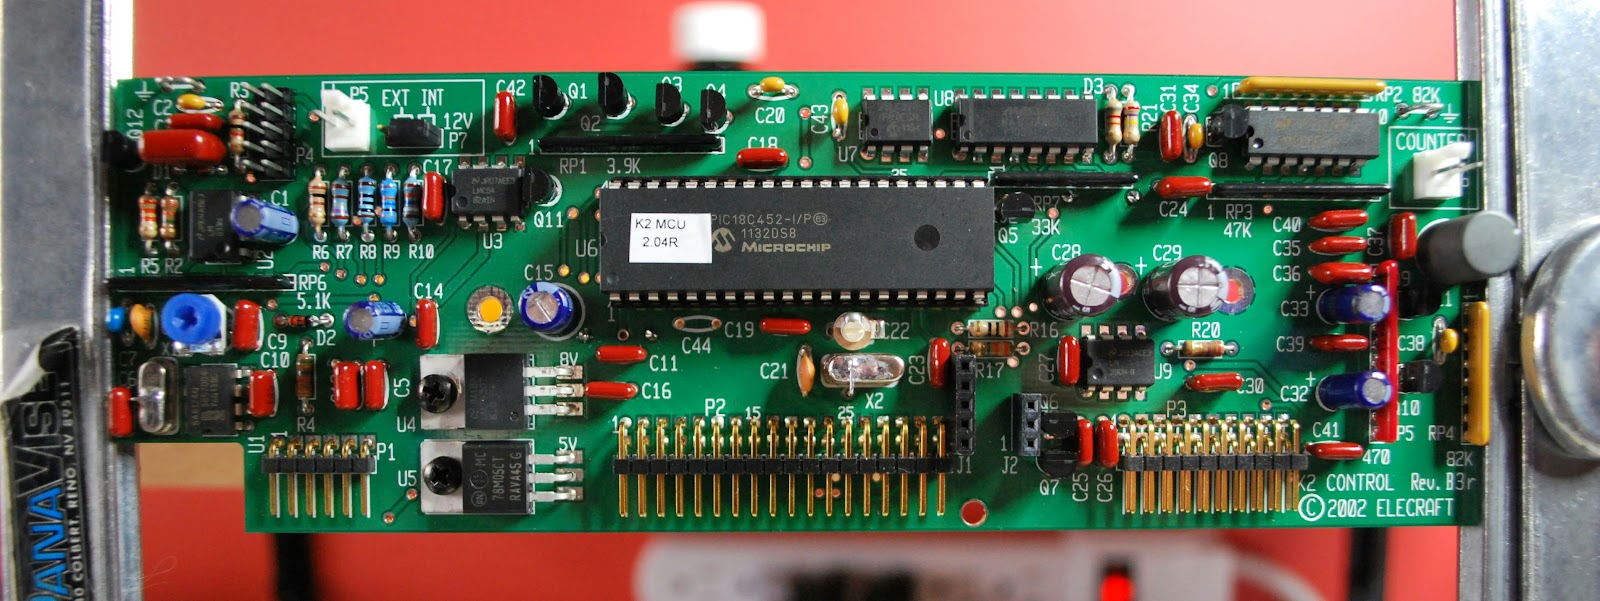 Ve3wdms Elecraft K2 Build The Control Board Green Electrical Circuit With Microchips And Transistors Stock